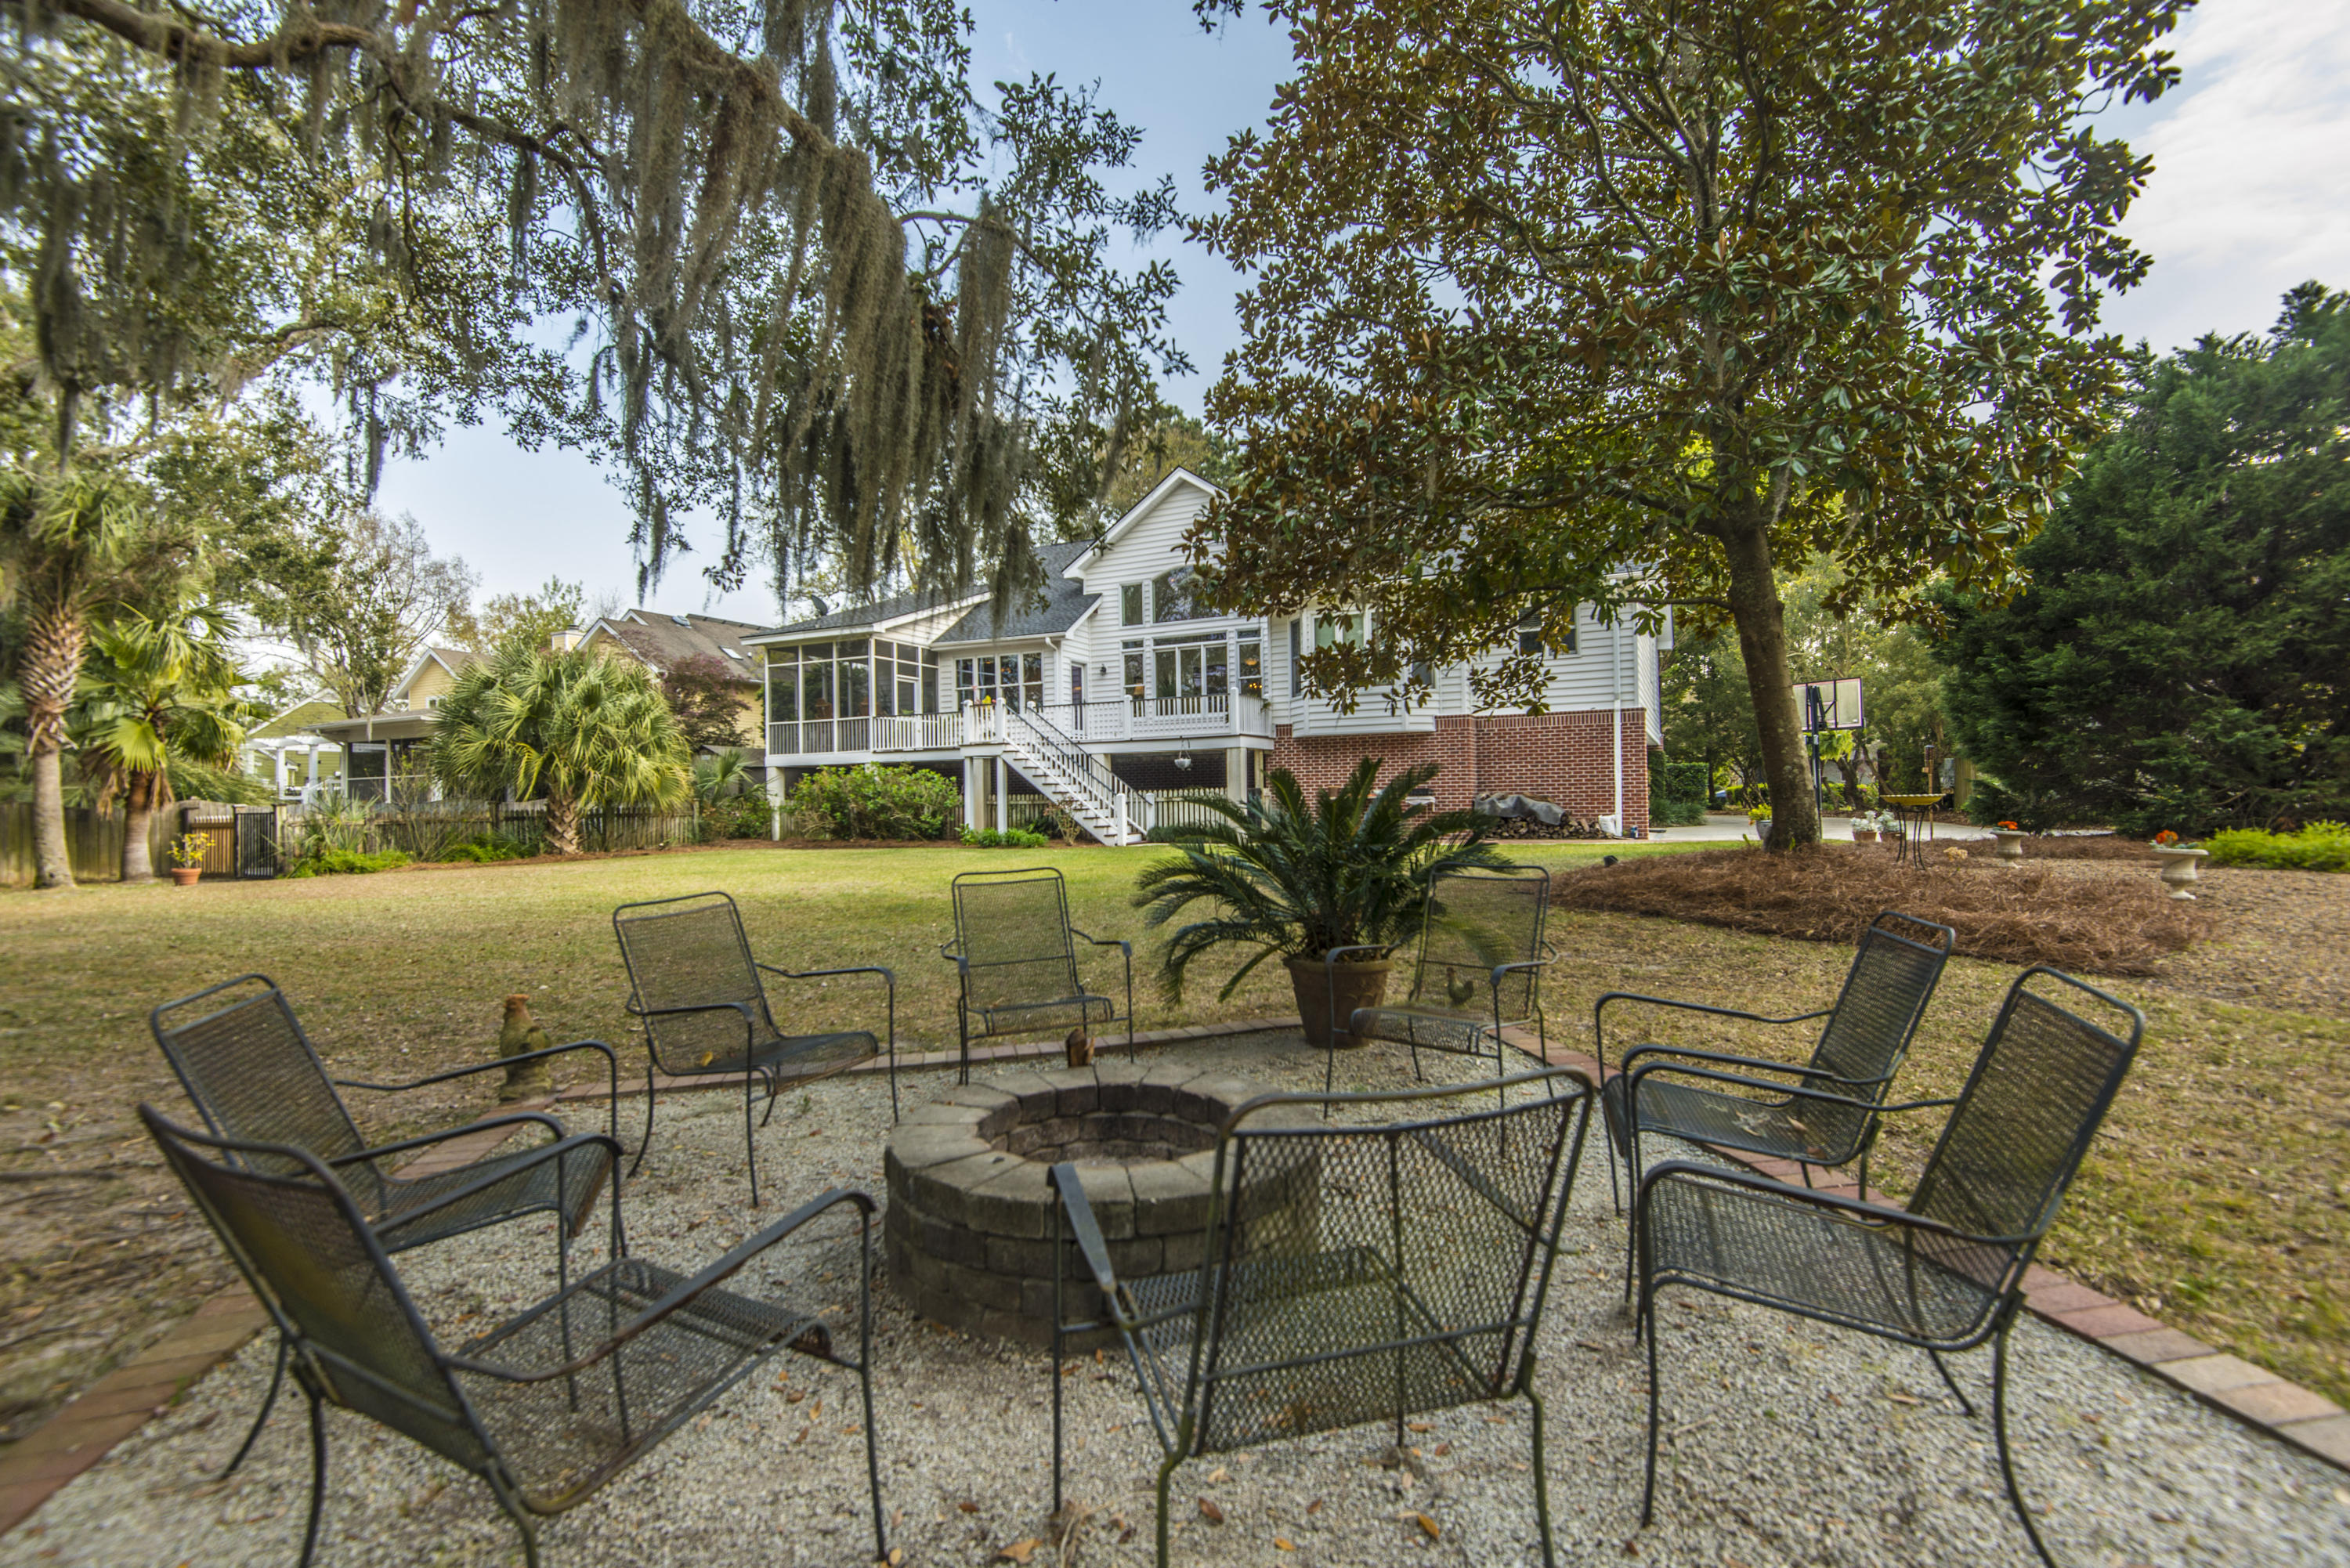 Stiles Point Plantation Homes For Sale - 906 Kushiwah Creek, Charleston, SC - 52